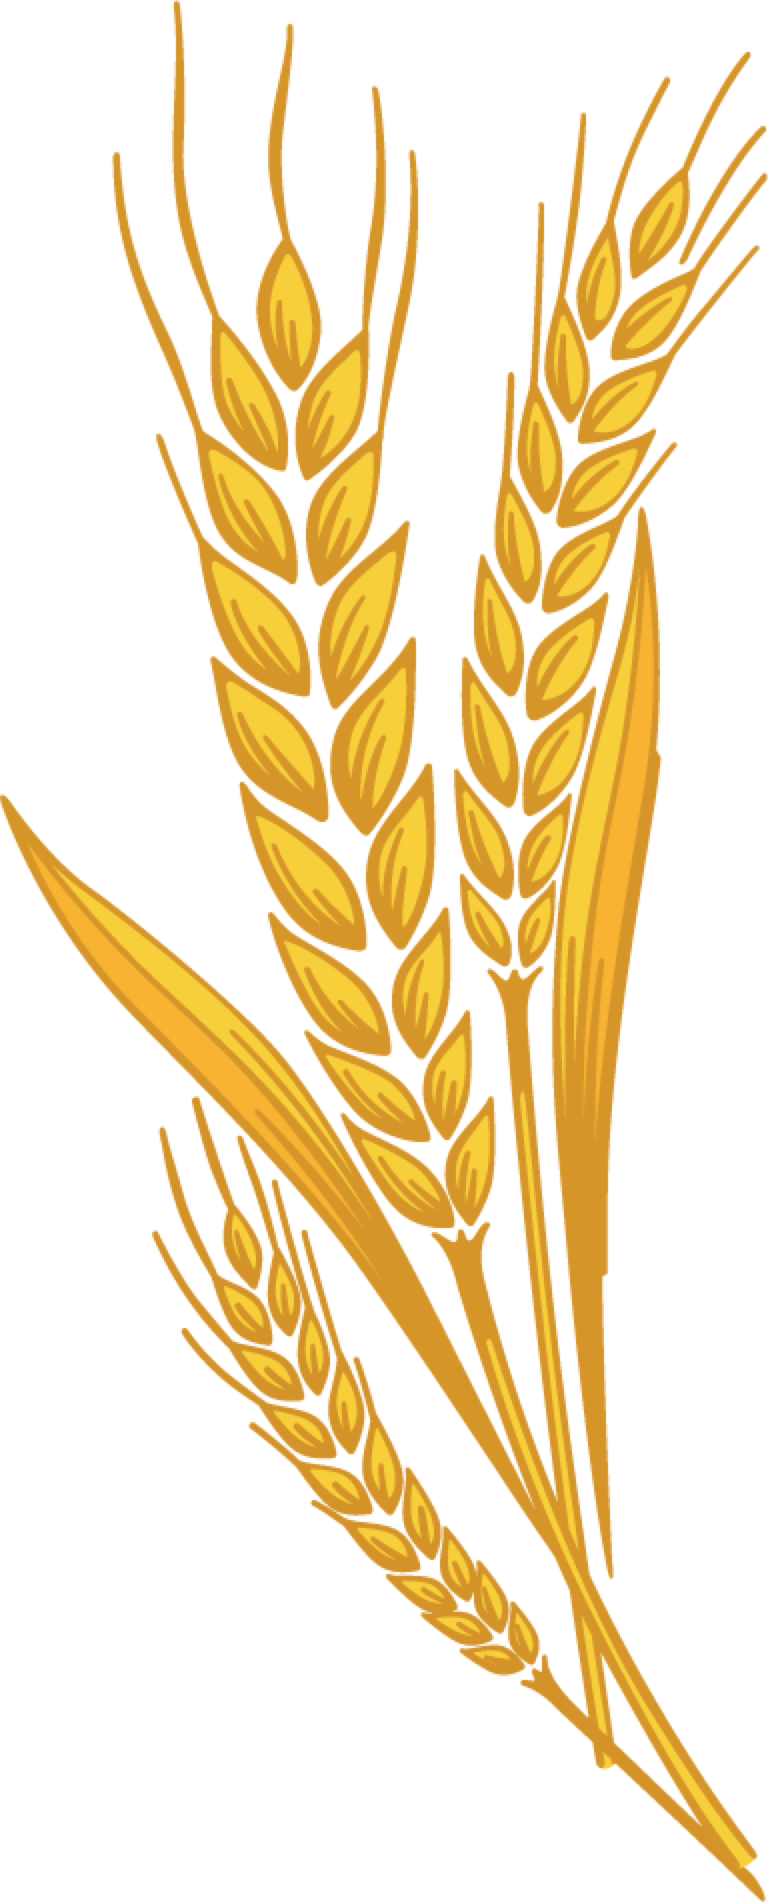 Shock of wheat clipart with transparent background svg freeuse download Grain clipart printable, Grain printable Transparent FREE ... svg freeuse download